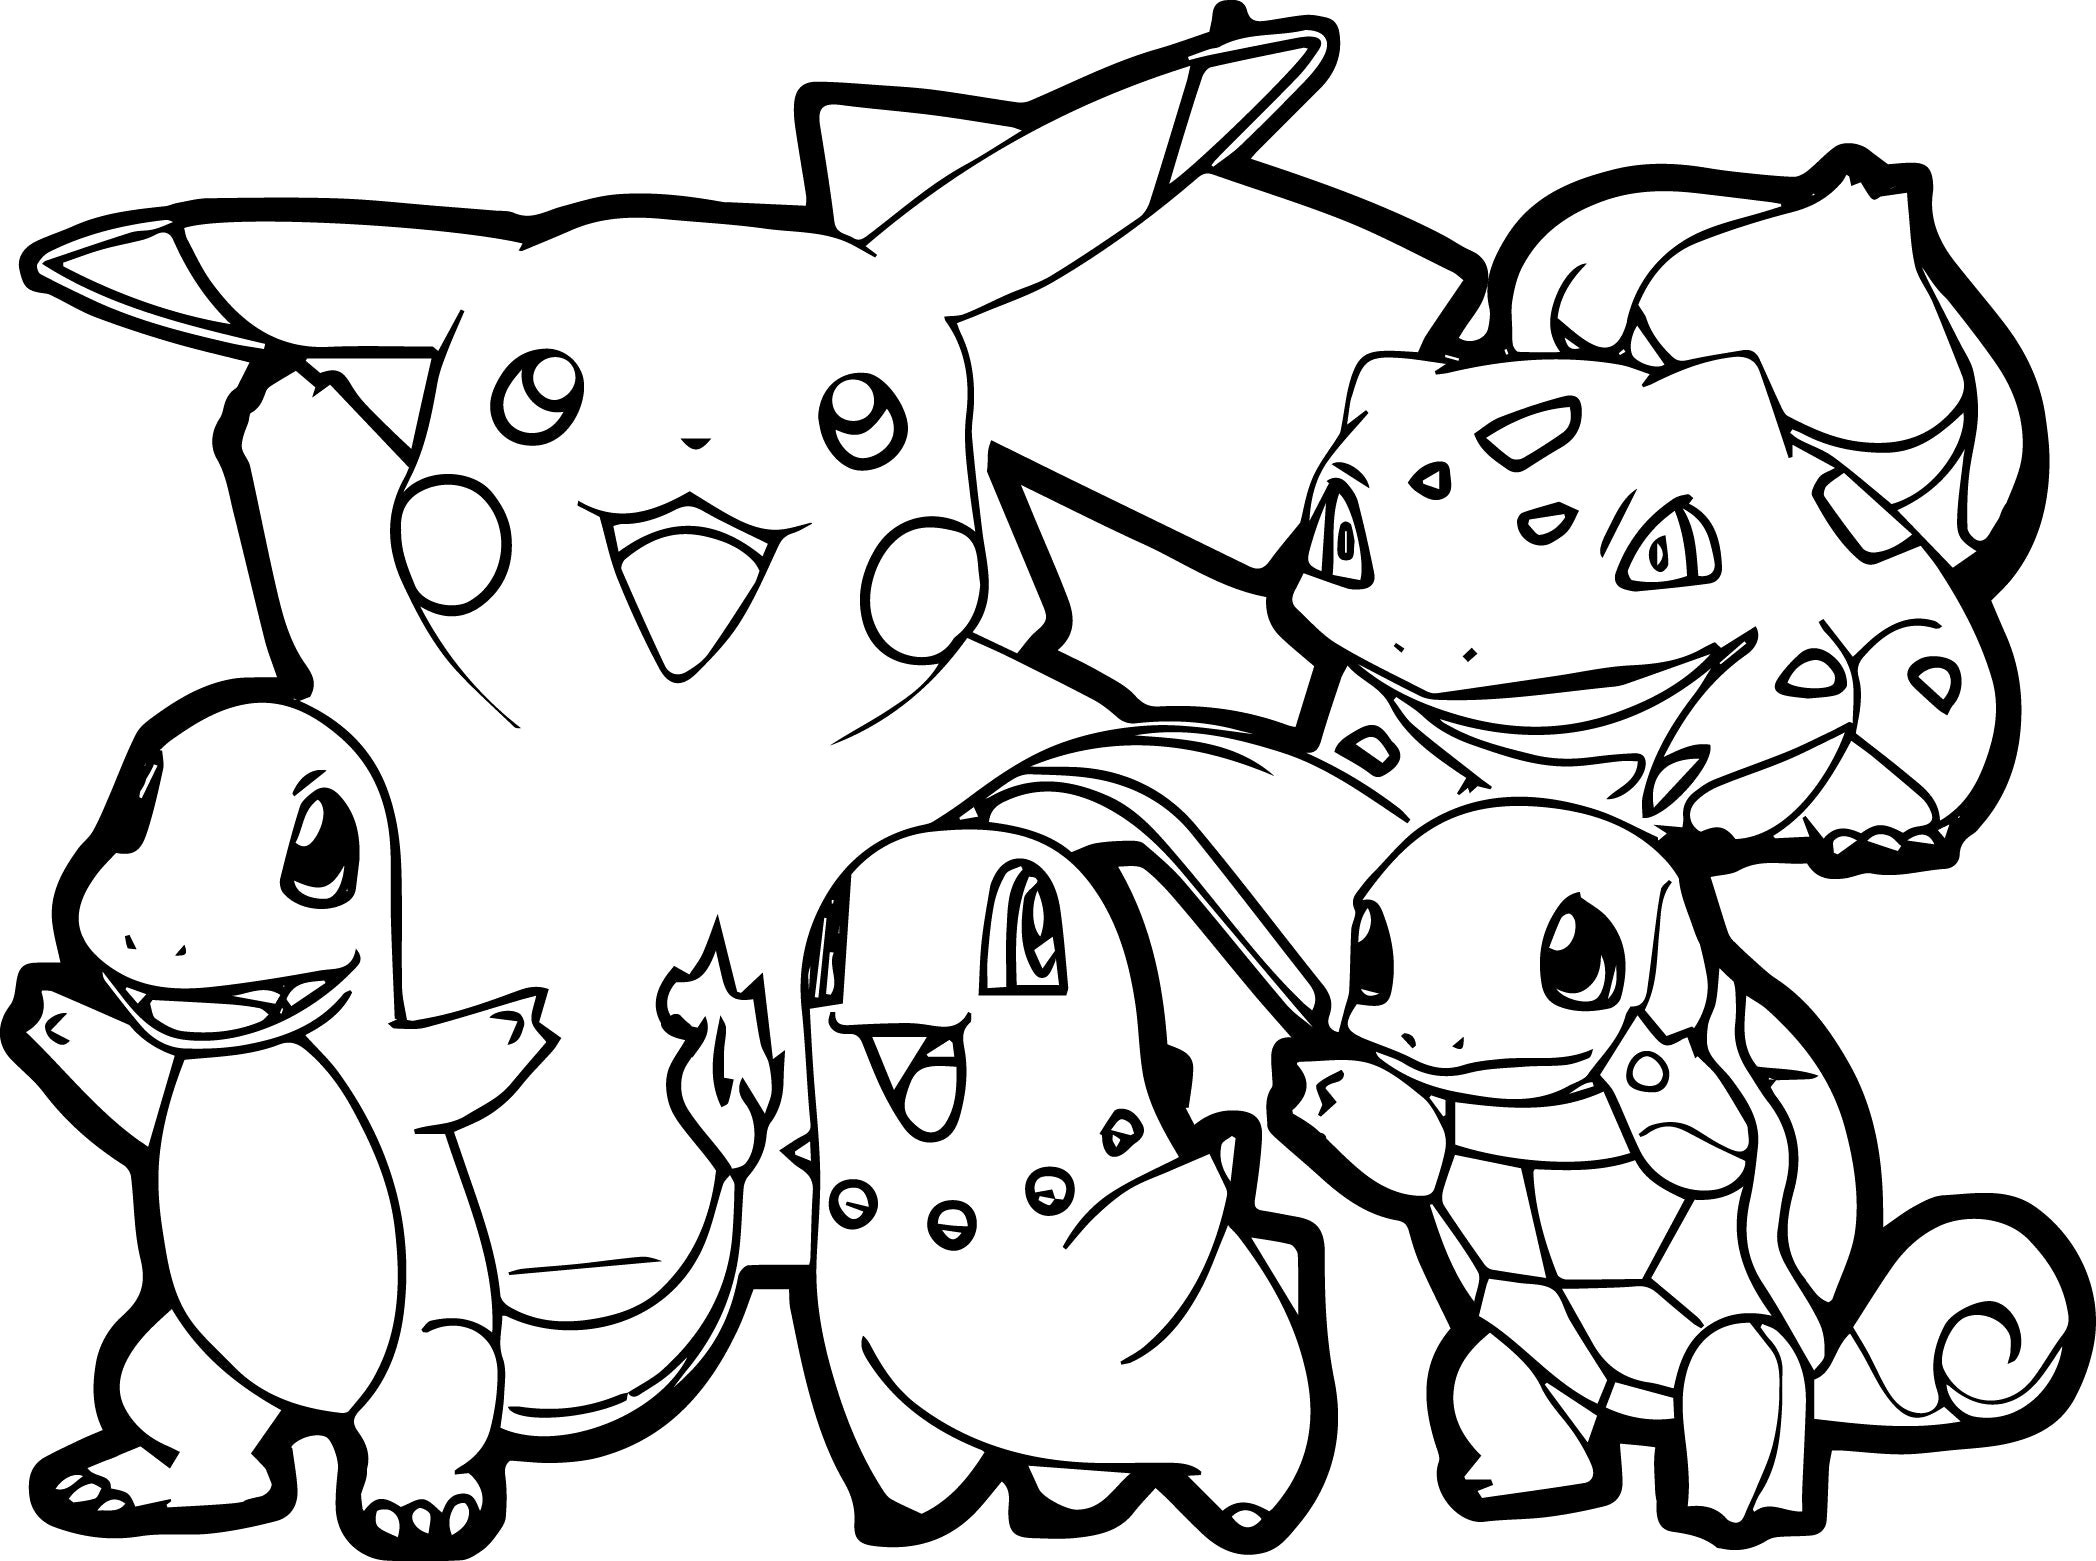 Co Uploads 2018 02 Po With Printable Pokemon Coloring Collection Of - Free Printable Pokemon Pictures